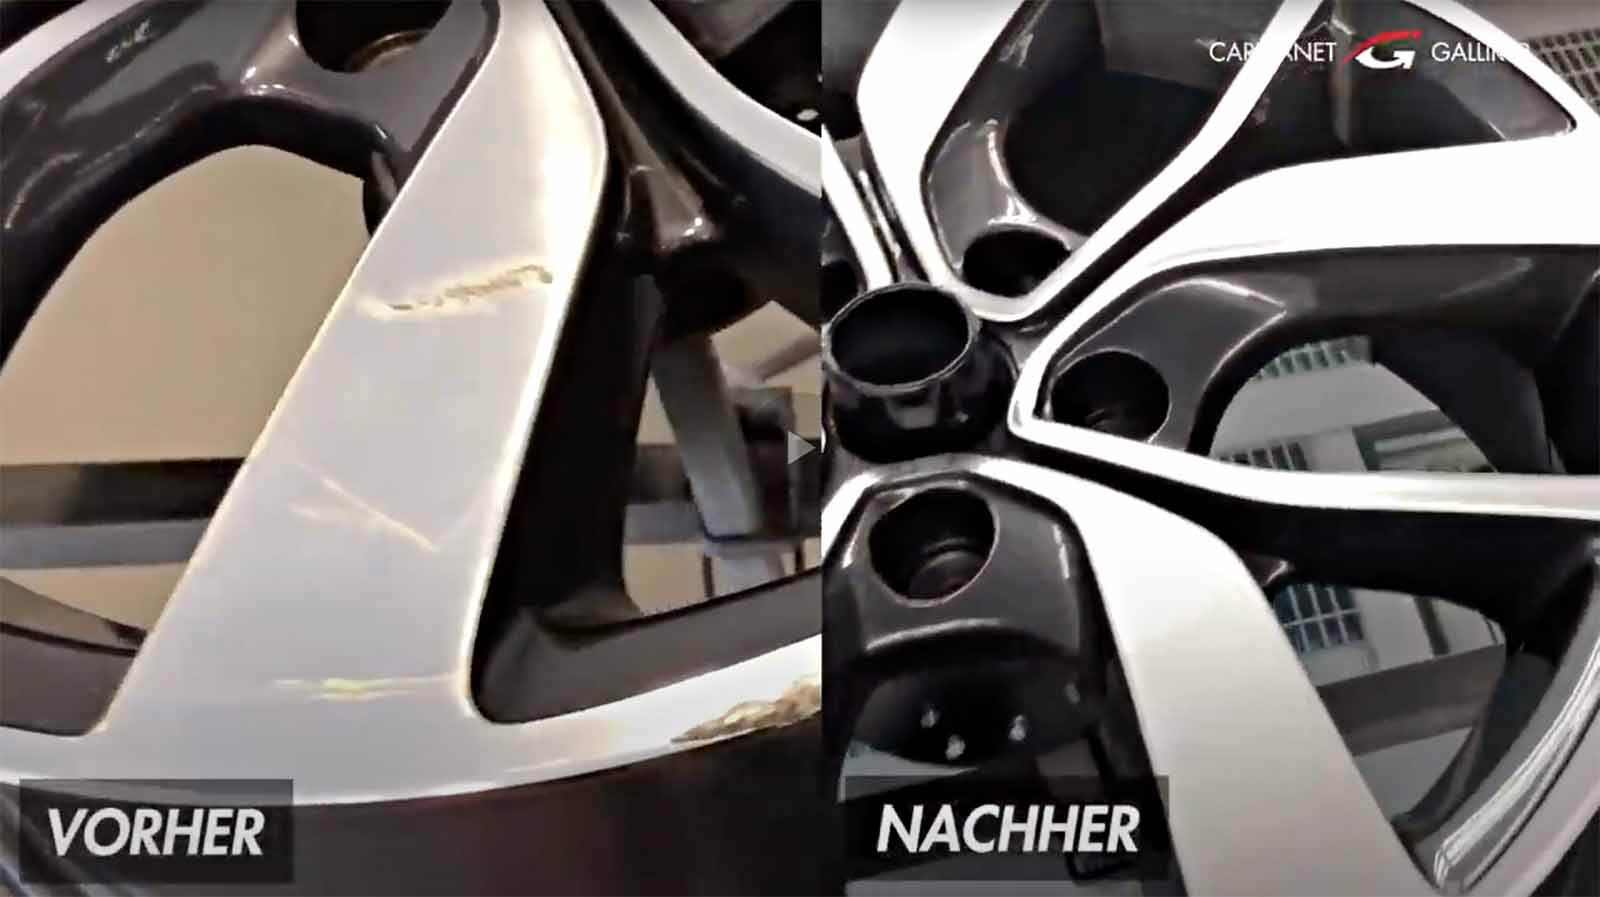 YouTube Carplanet Garage Galliker Felgenreparatur CNC Glanzdrehmaschine Garage Galliker Autowerkstatt